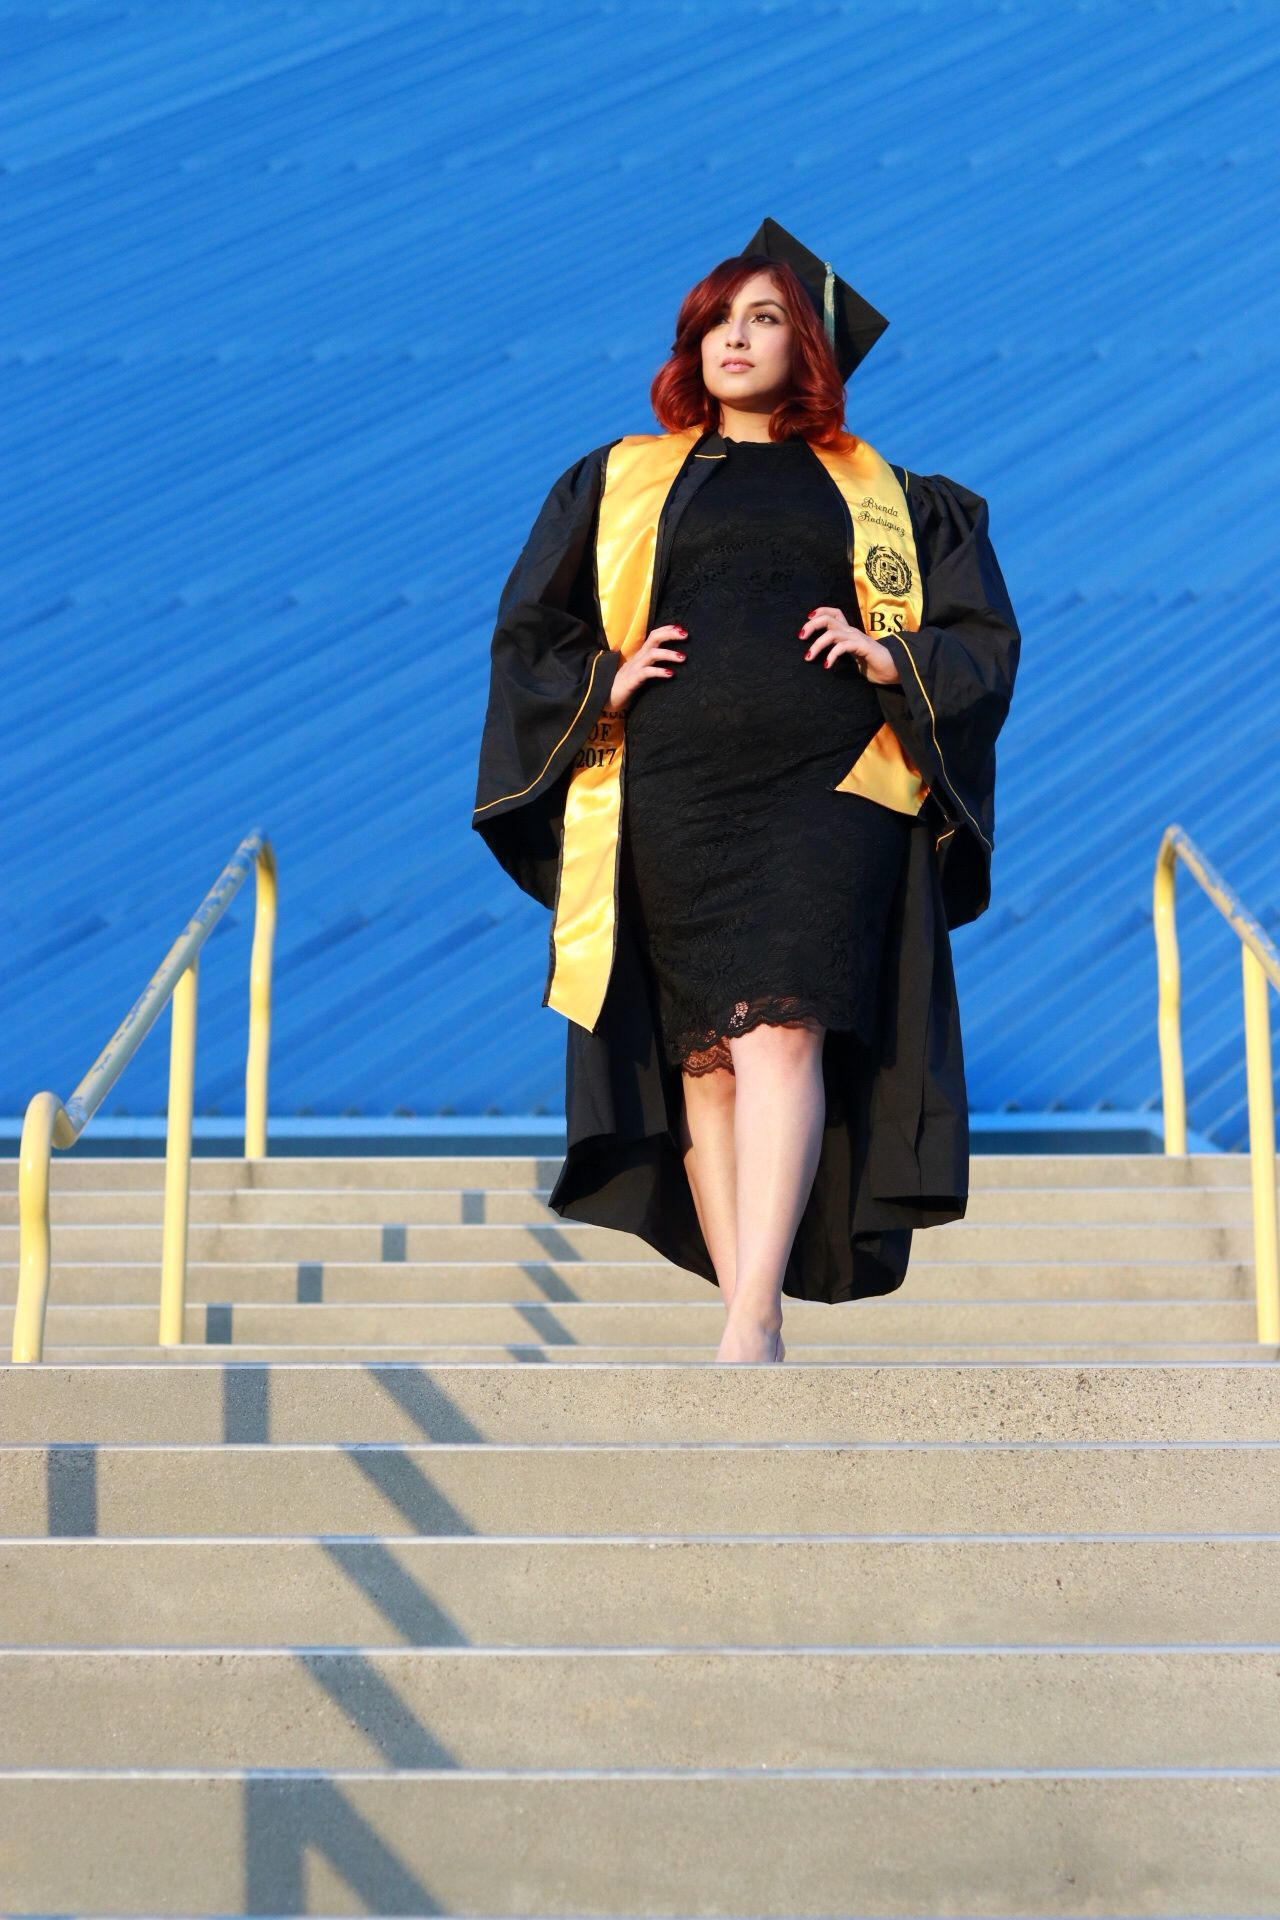 Graduation pictures cap and gown class of 2017 csulb grad pictures ...